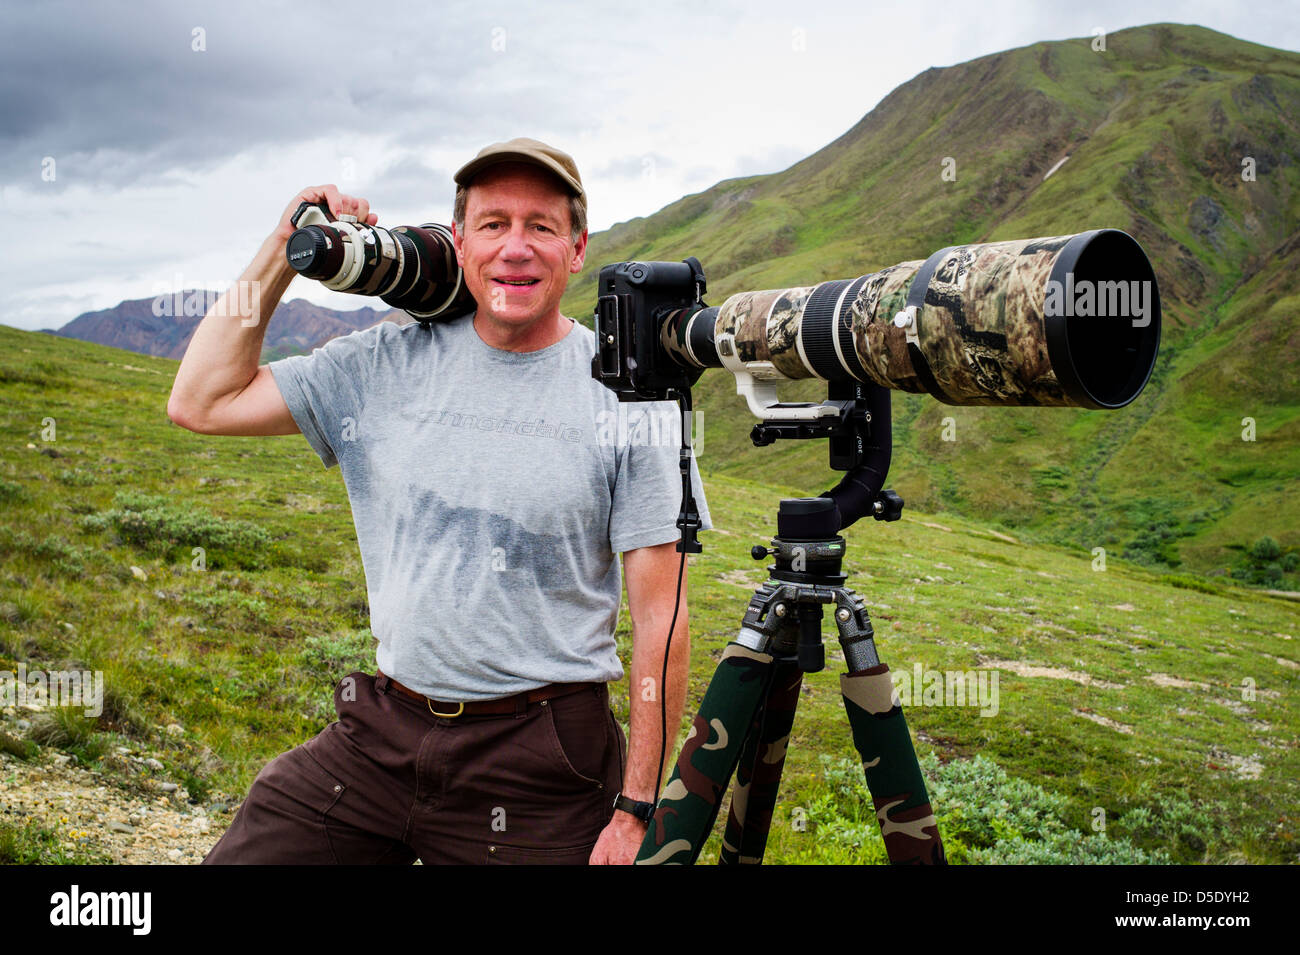 Portrait of professional photographer with large telephoto lens & tripod, Denali National Park, Alaska, AK - Stock Image